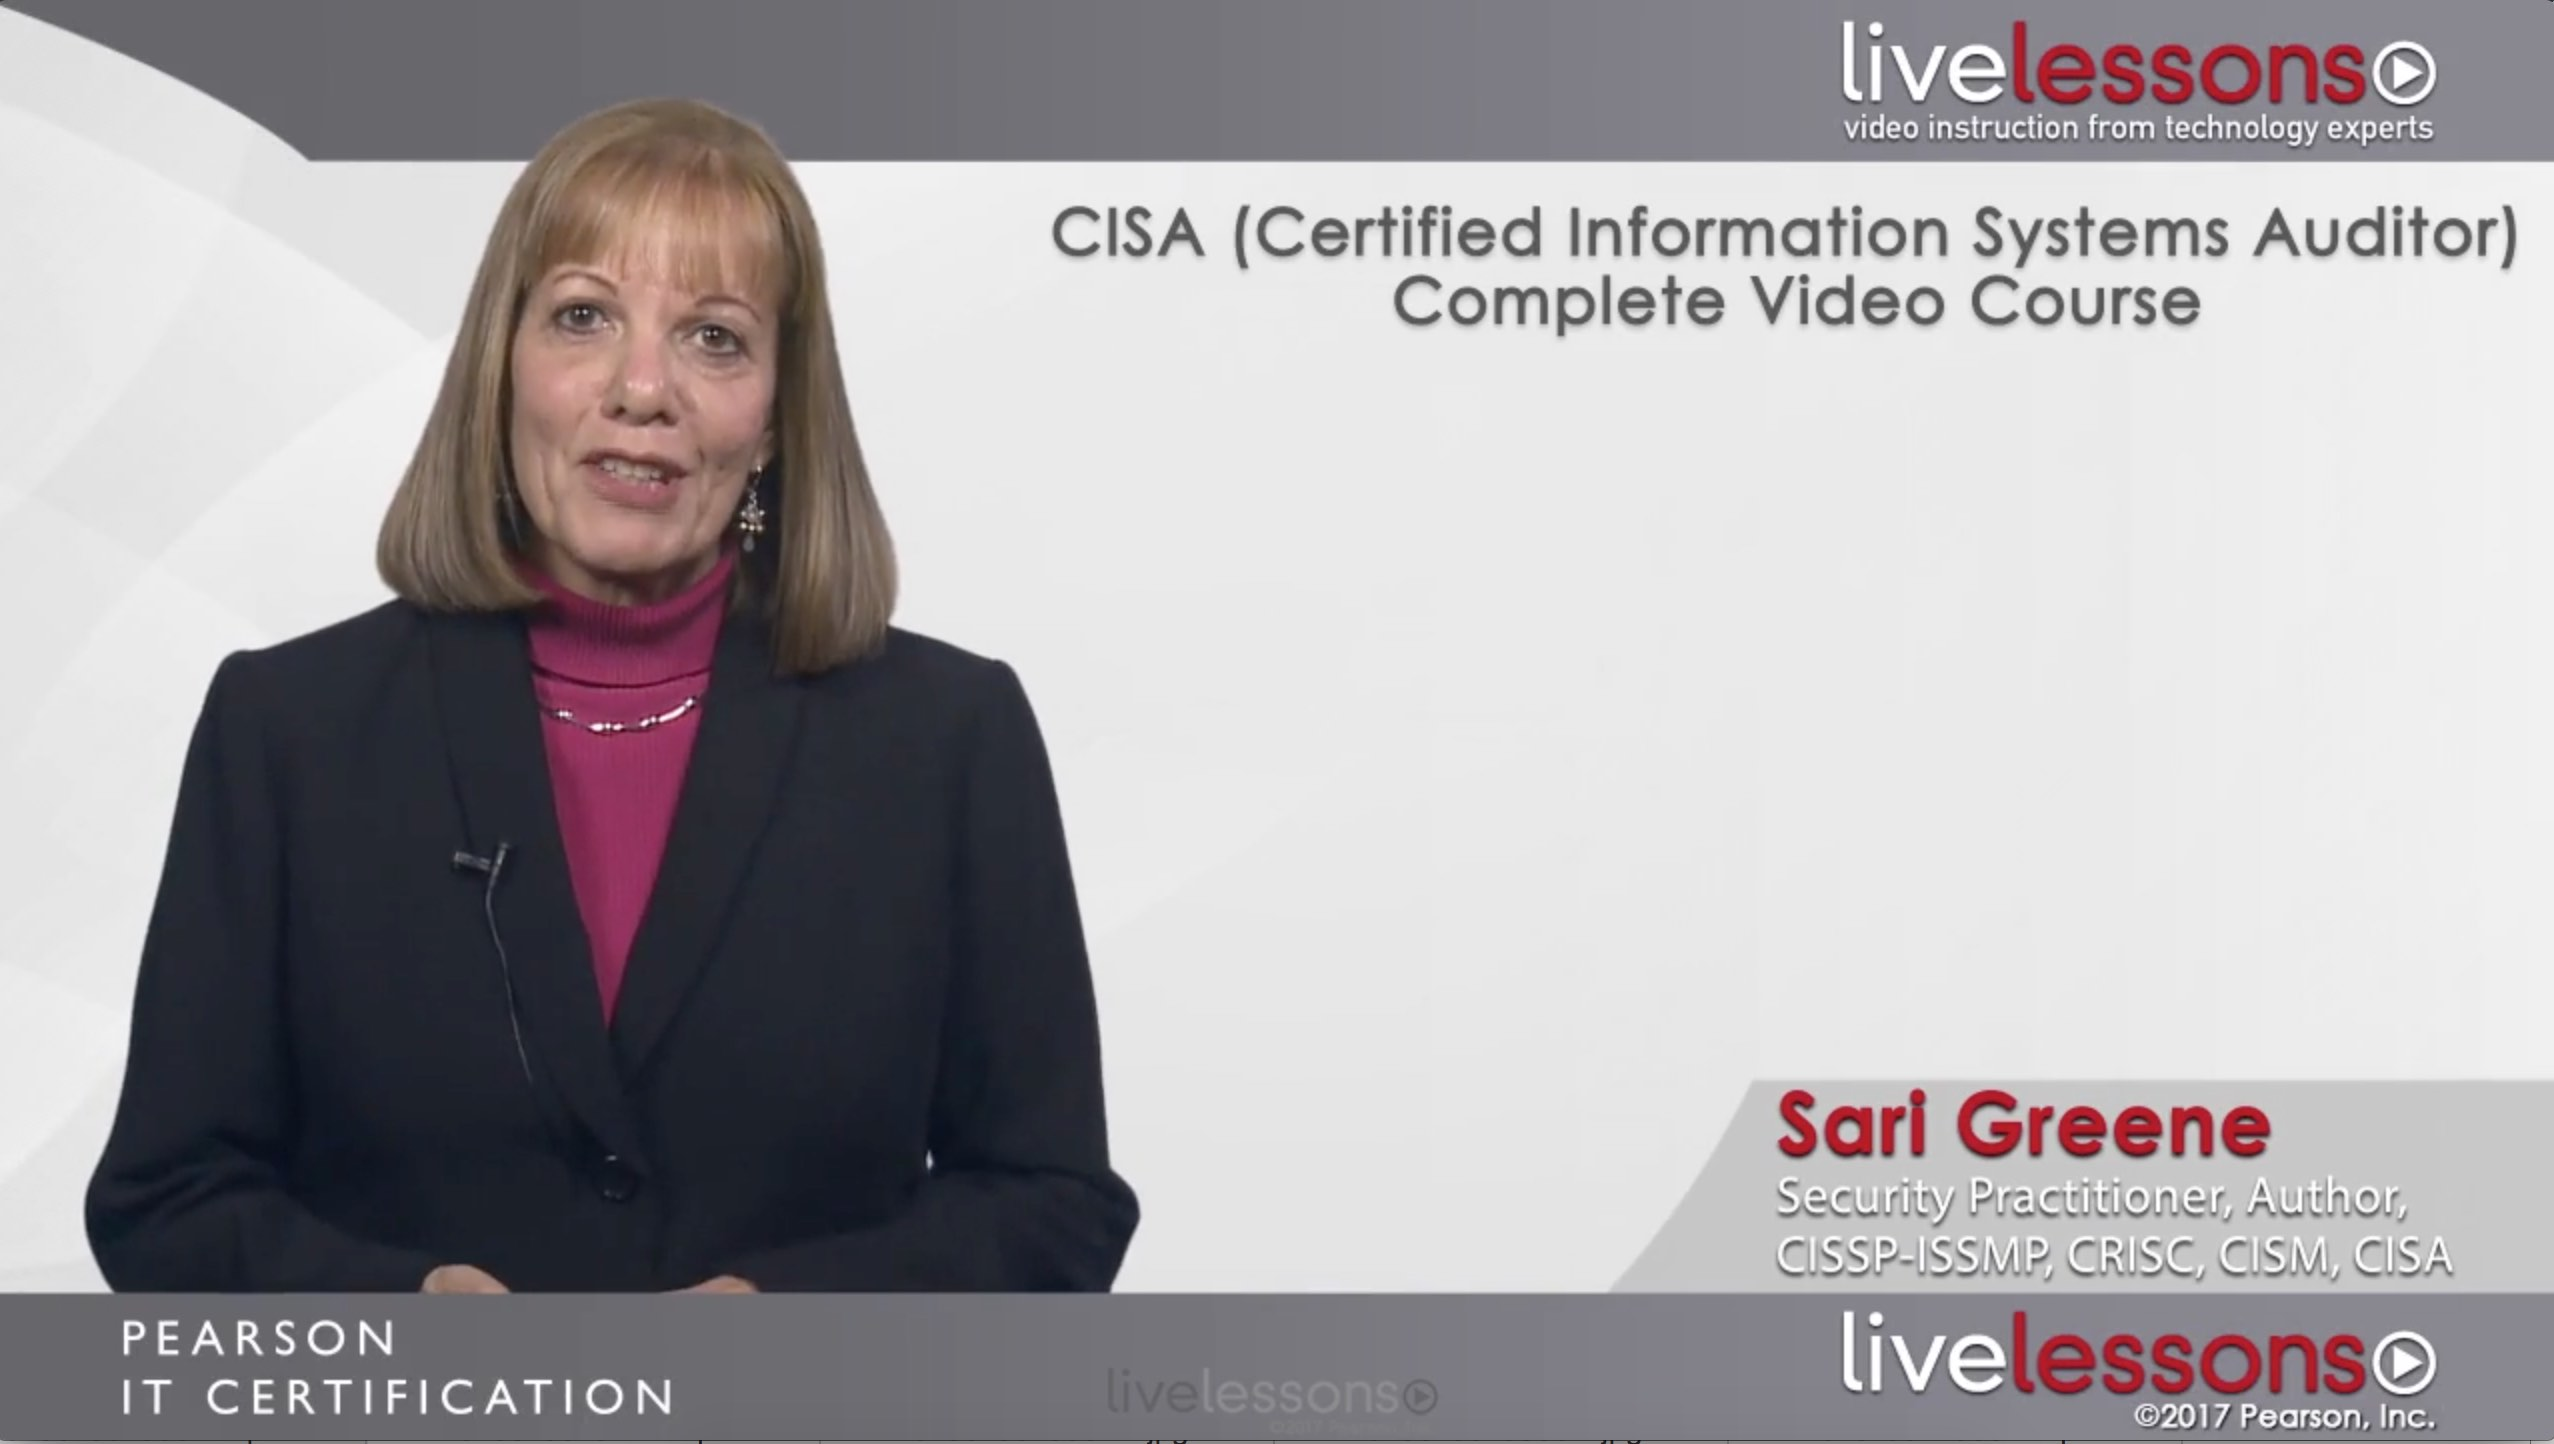 CISA (Certified Information Systems Auditor) CISA (Certified Information Systems Auditor)